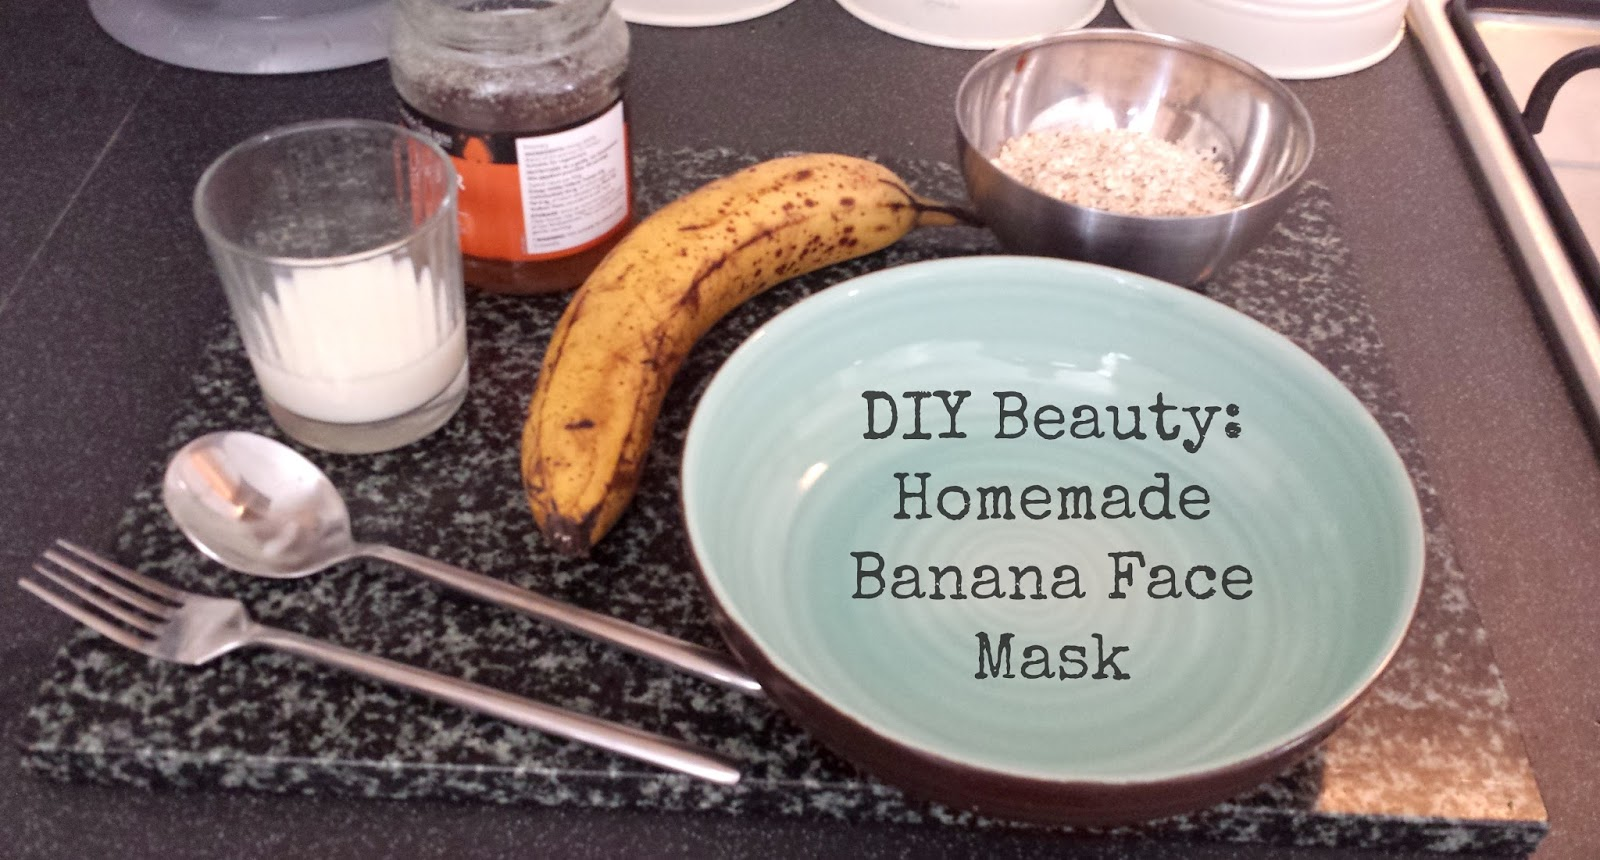 6 DIY Banana Mask Recipes for Skin and Hair Care -   If you already past the age of 26 (the estimated age when fine lines start appearing), you can regularly apply these DIY banana mask recipes, at least once a week, to considerably slow down the proliferation of unwelcome wrinkles.